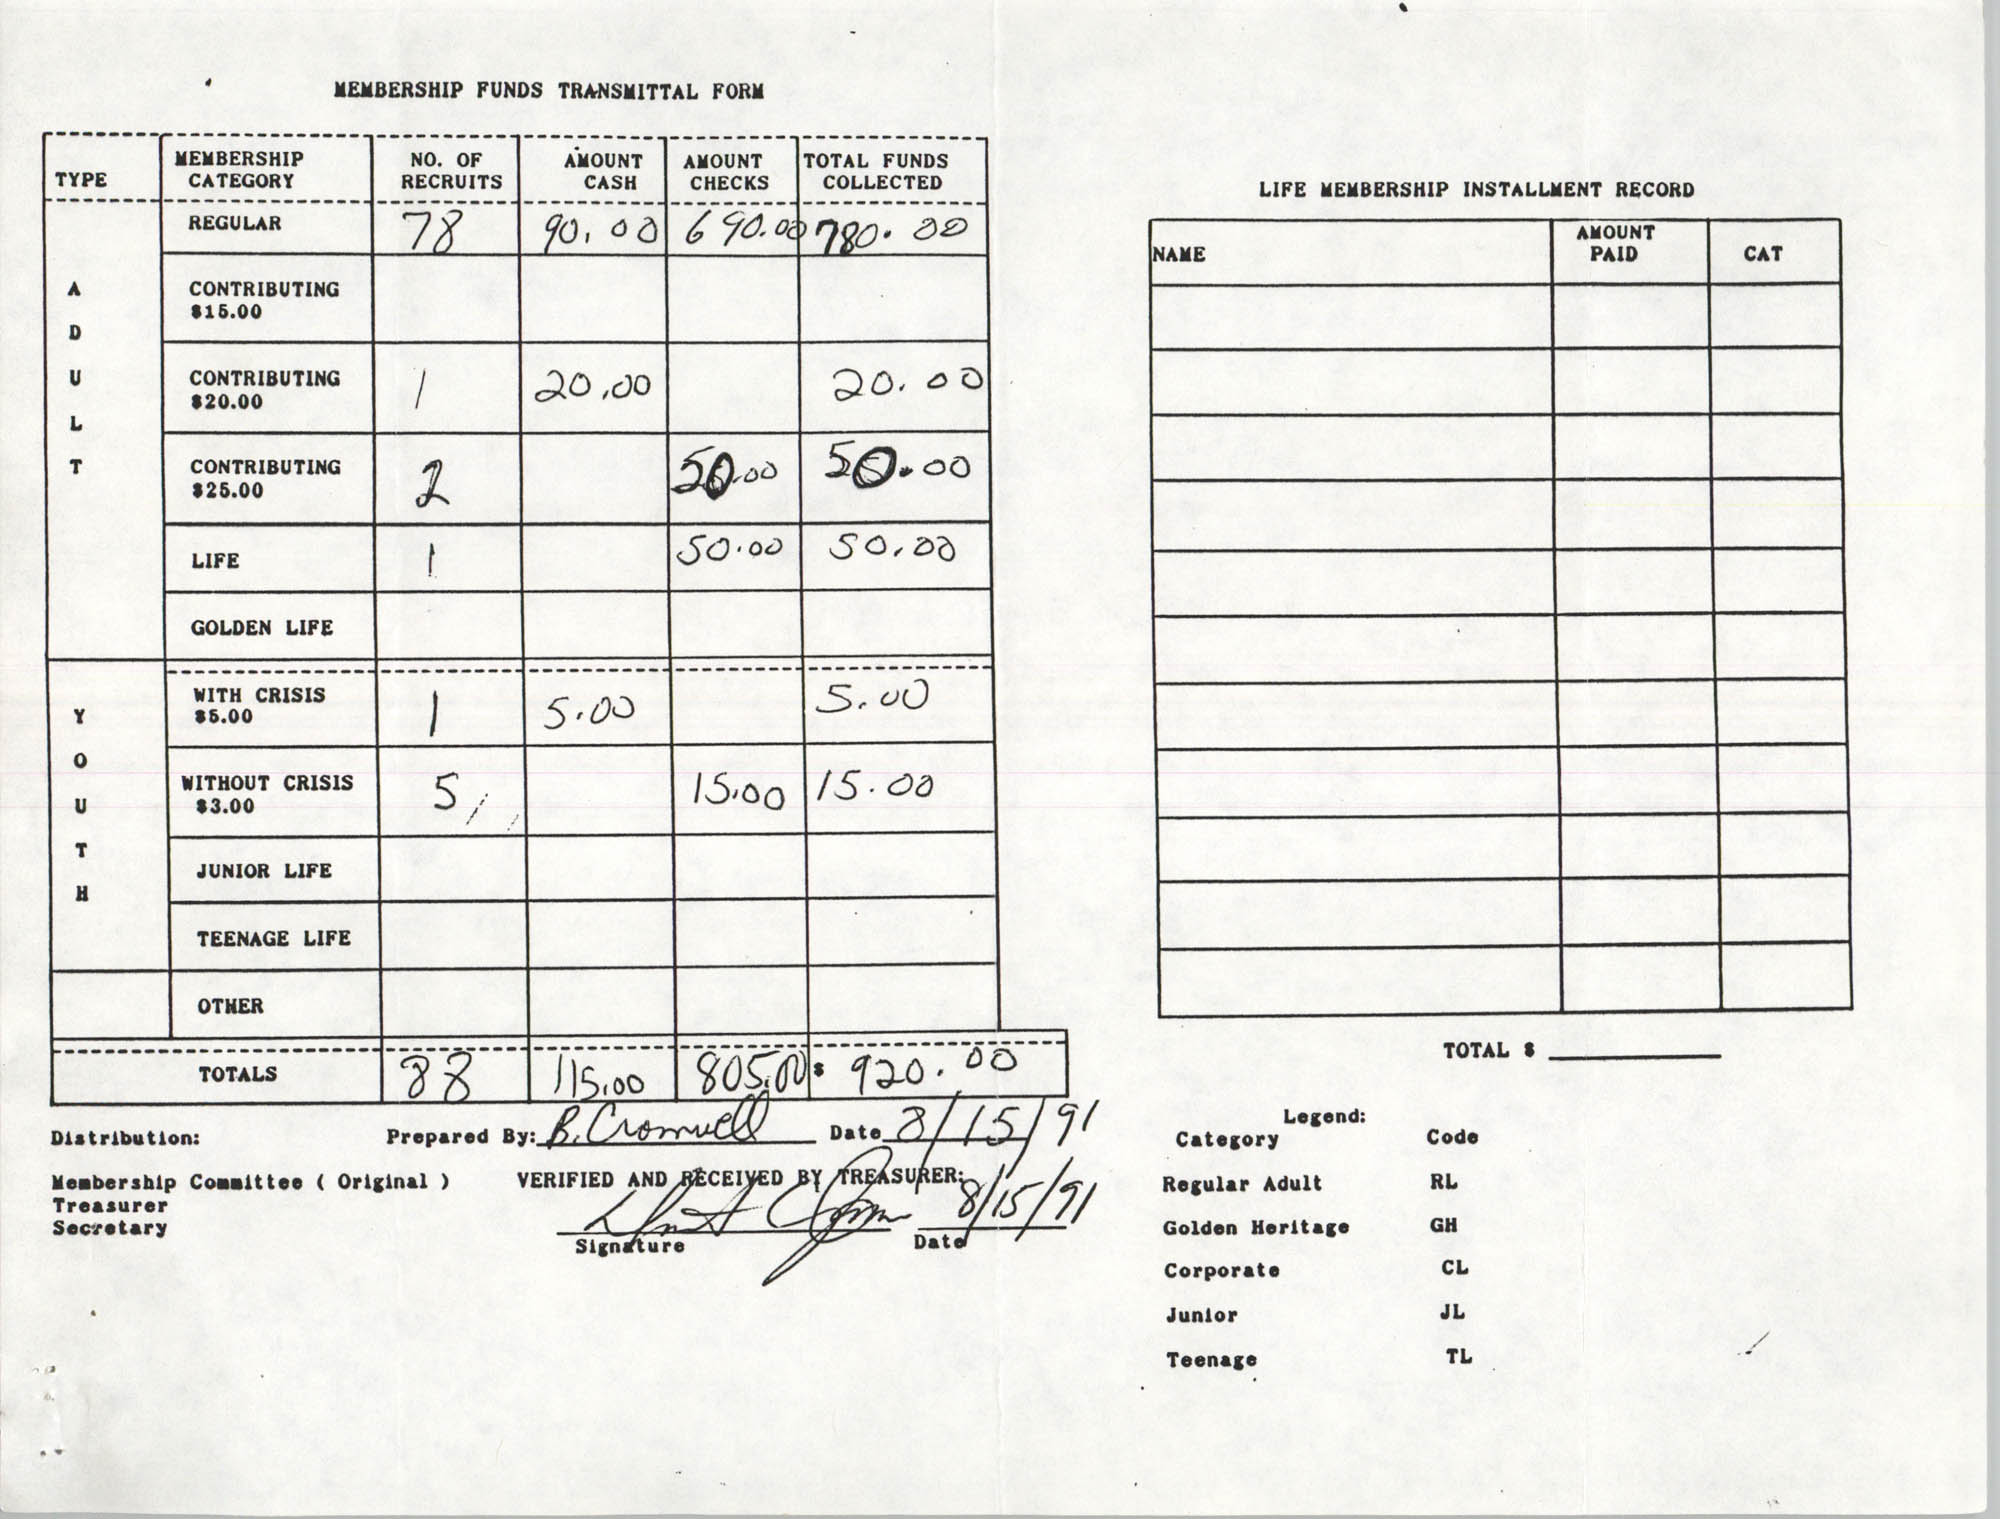 Charleston Branch of the NAACP Funds Transmittal Forms, August 1991, Page 11